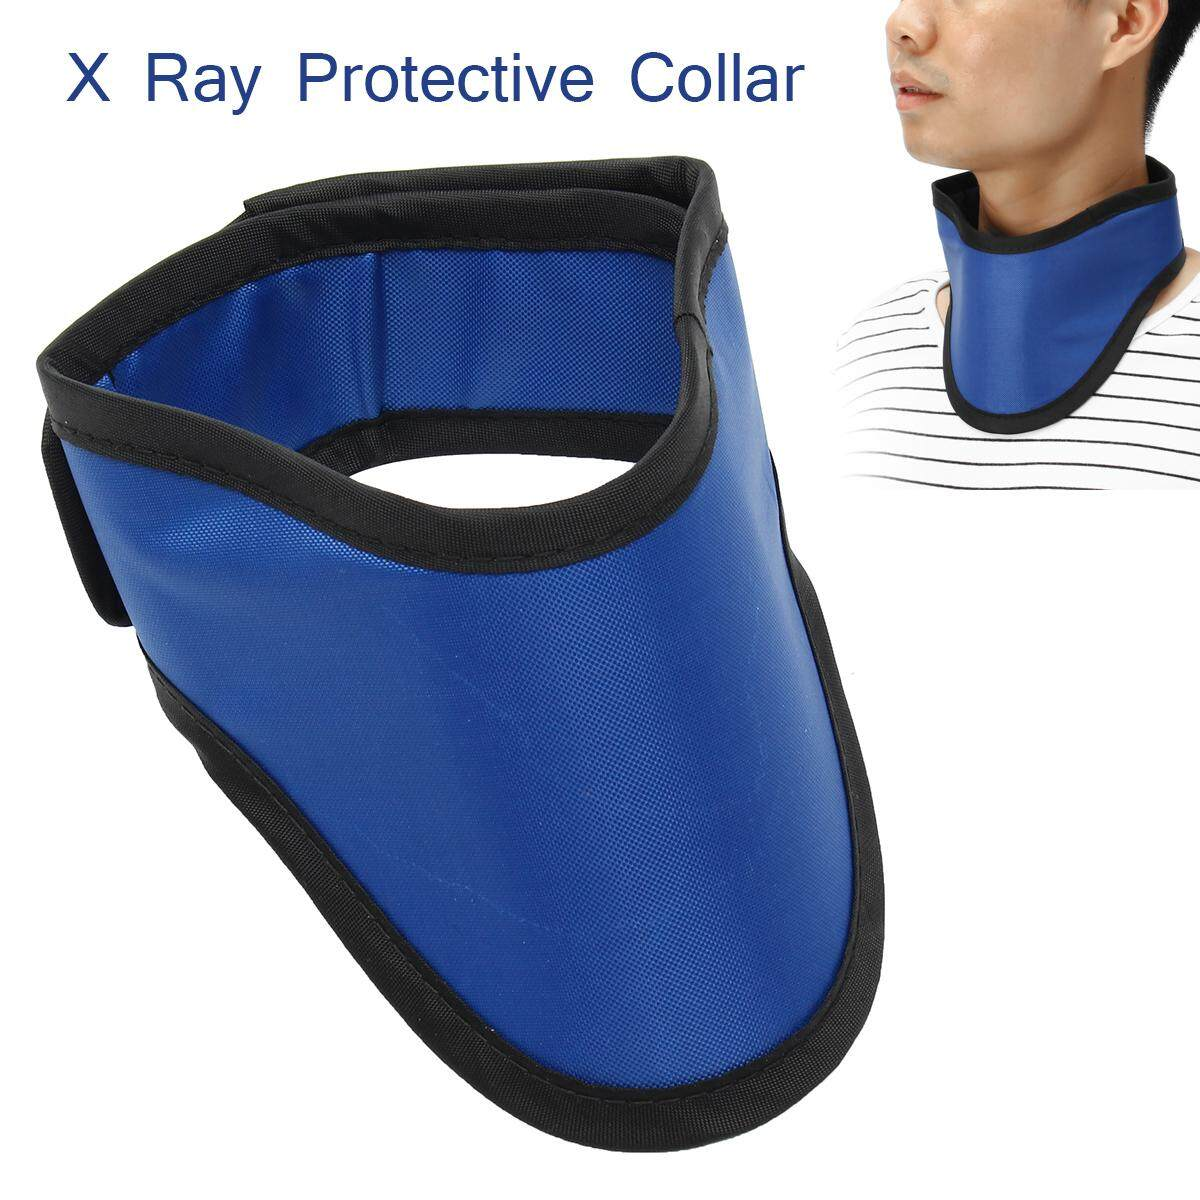 X Ray Protective Collar Lead Thyroid Collar Ct Radiation Shield Lead Neck Cover By Freebang.